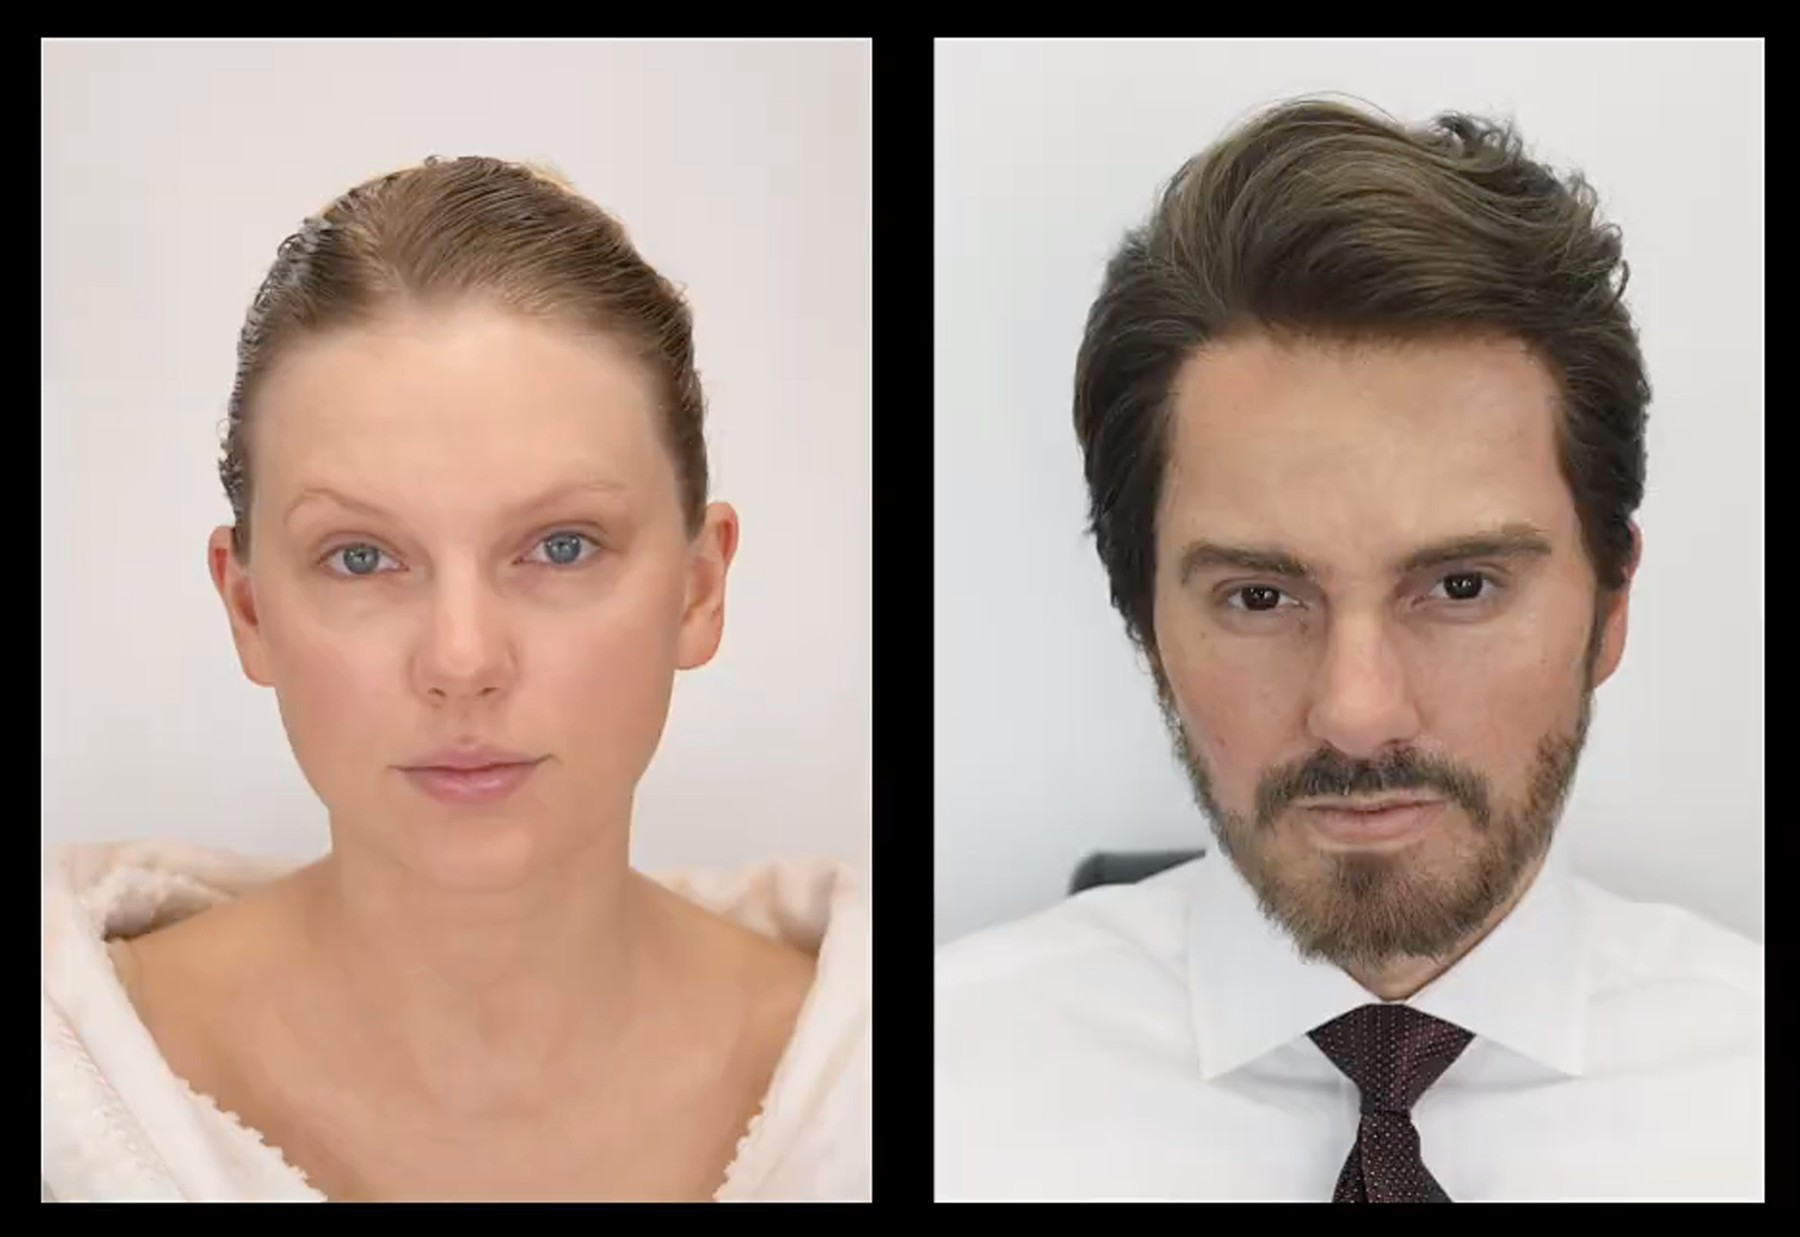 Ferrari Press Agency The Man   1  Ref 11457 27/02/20 See Ferrari text Picture must credit: Taylor Swift/YouTube  Pop queen Taylor Swift transforms into a bearded man for her latest  video which takes aim at Leonardo DiCaprio's sexist role in movie Wolf of Wall Street.But the shock reveal only happens at the end of the four minute promo as the credits roll accompanies by images of Swift's gradual transformation –including brown colours contact lenses.She also shows support for multi-Grand Slam winning tennis legend Serena Williams to highlight sexism in all aspects of life.Swift . 30, wrote the script and makes her solo directorial debut with the promo for the  feminist empowerment track, The Man.She ditches her signature blonde locks and bold red lipstick in favour of facial prosthetics including new nose.She also sports a brown wig, s she portrays the many scenarios in which men are rewarded more than women who do the same.The video starts with Swift playing fiery male boss who shouts orders to his colleagues, but still manages to receive praise.   OPS: Clip from Taylor Swift's music video The Man with her playing the title chracater. The reveal only comes at the end of the promo which she wrote and directed.The end credits reveal the make-over  Picture supplied by Ferrari, Image: 501464636, License: Rights-managed, Restrictions: , Model Release: no, Credit line: Taylor Swift/YouTube / Ferrari / Profimedia